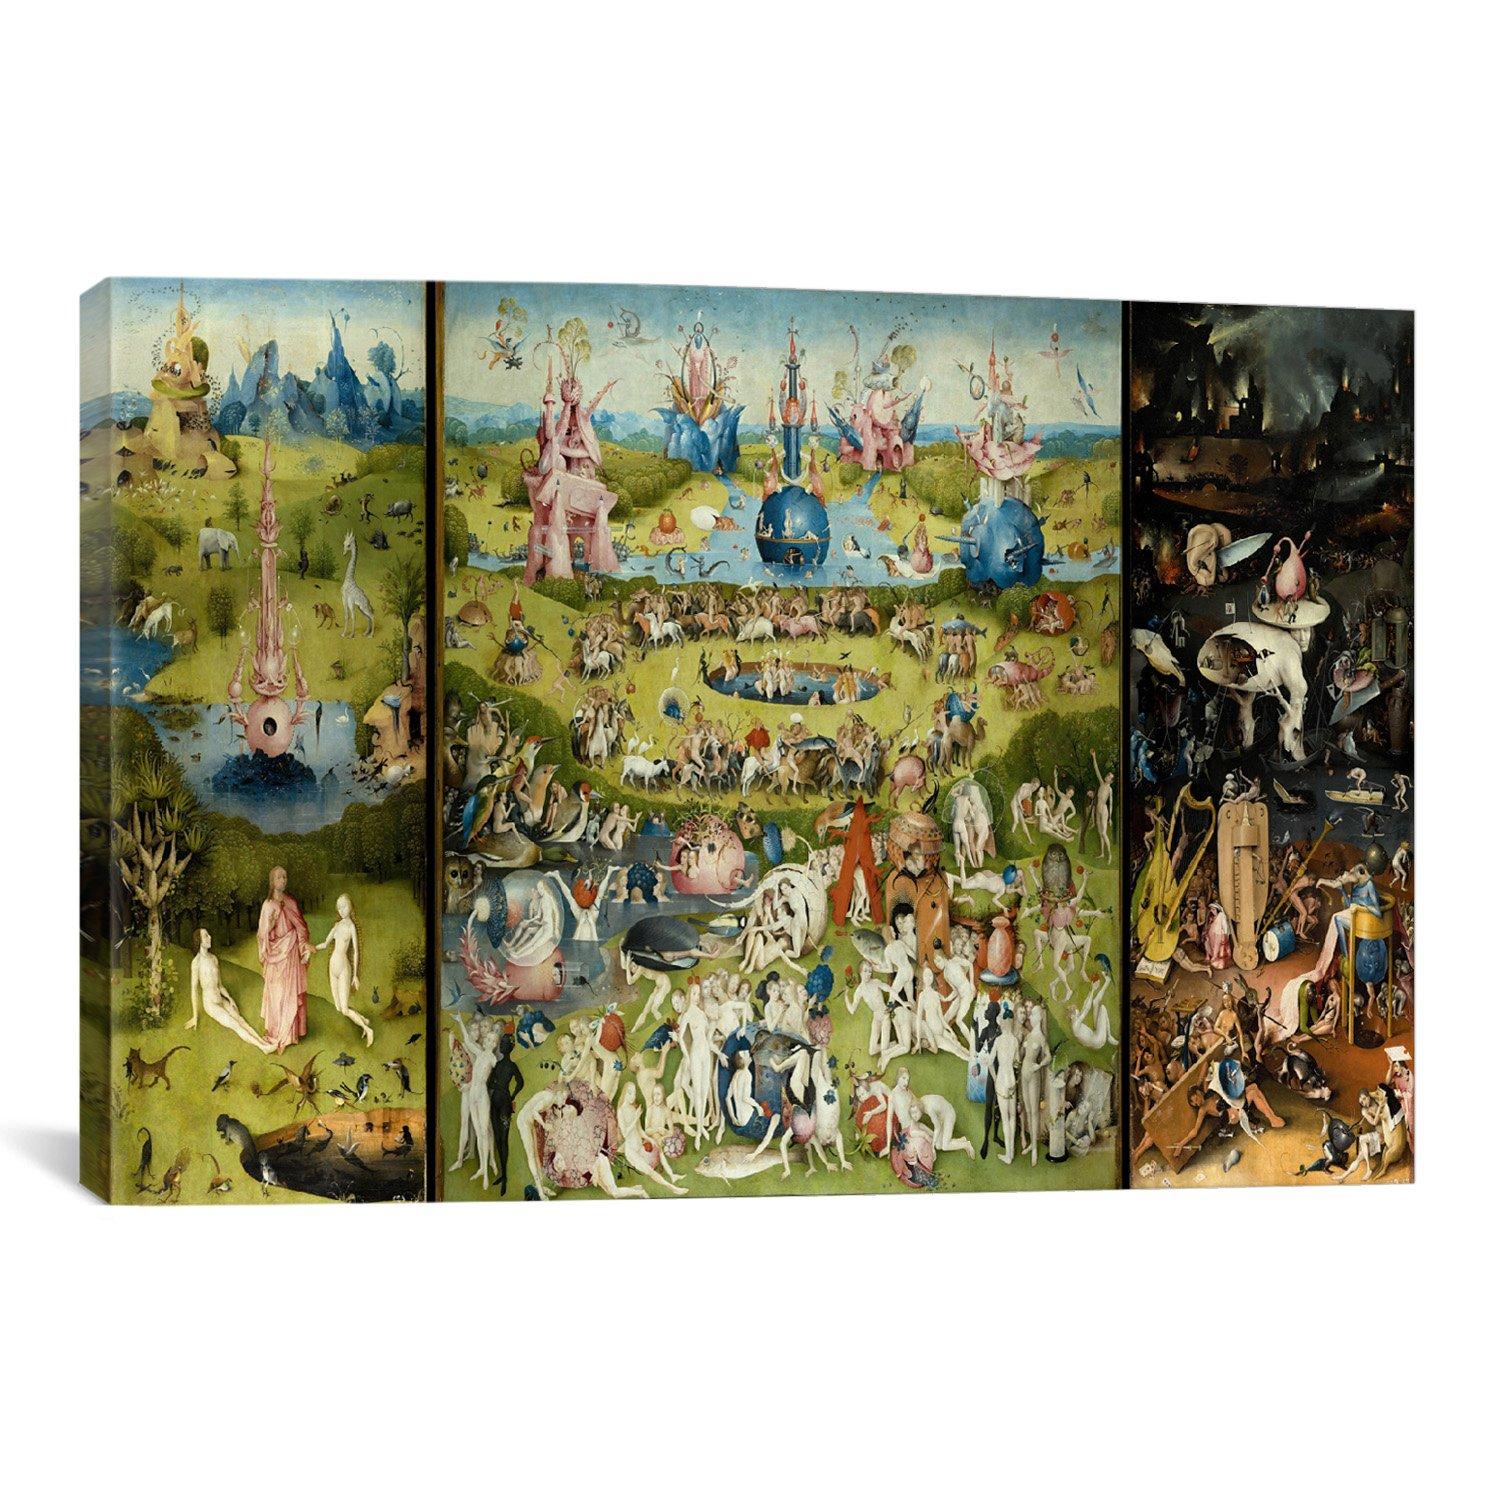 iCanvasART The Garden of Earthly Delights by Hieronymus Bosch Canvas Art Print, 40 by 26-Inch by iCanvasART